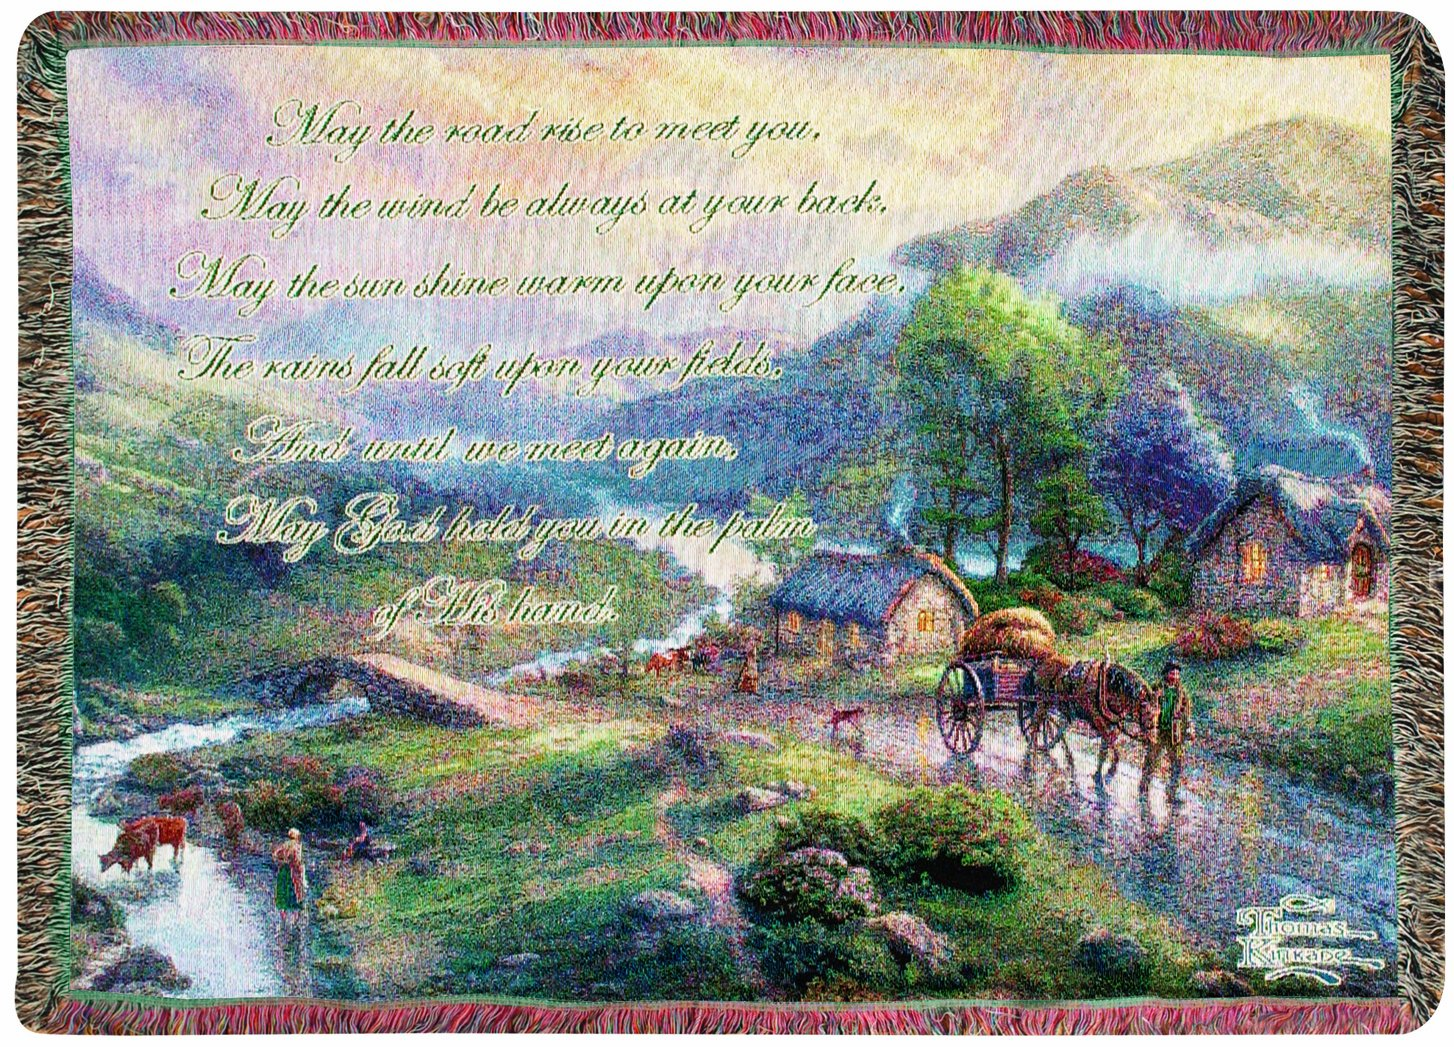 Manual Thomas Kinkade 50 x 60-Inch Tapestry Throw with Verse, Emerald Valley